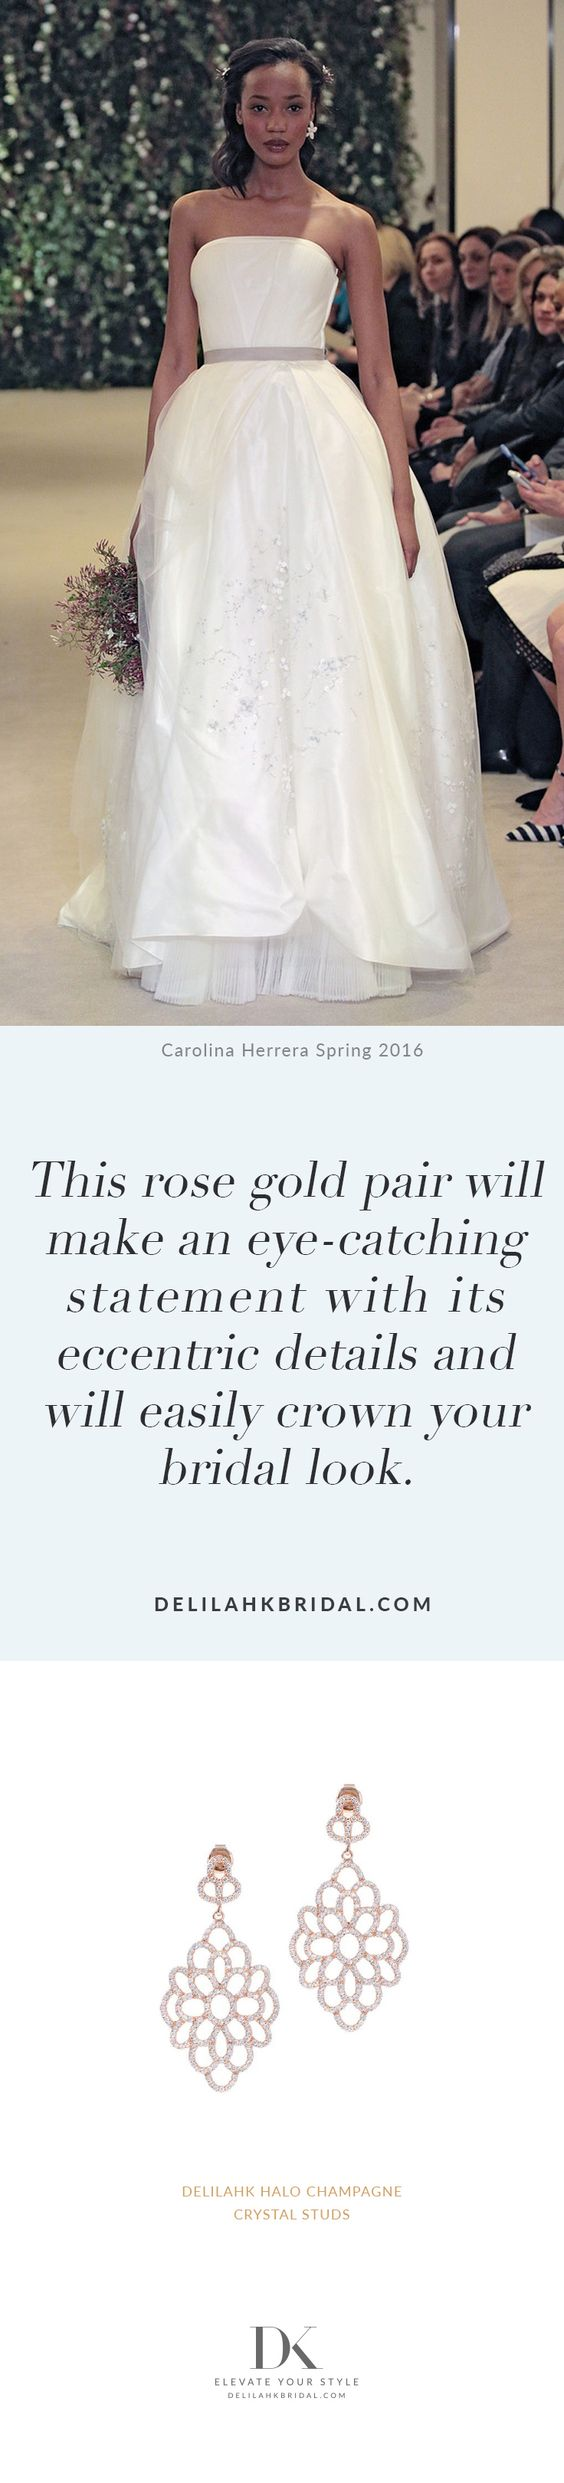 This rose gold pair will make an eye-catching statement with its eccentric details and will easily crown your bridal look.